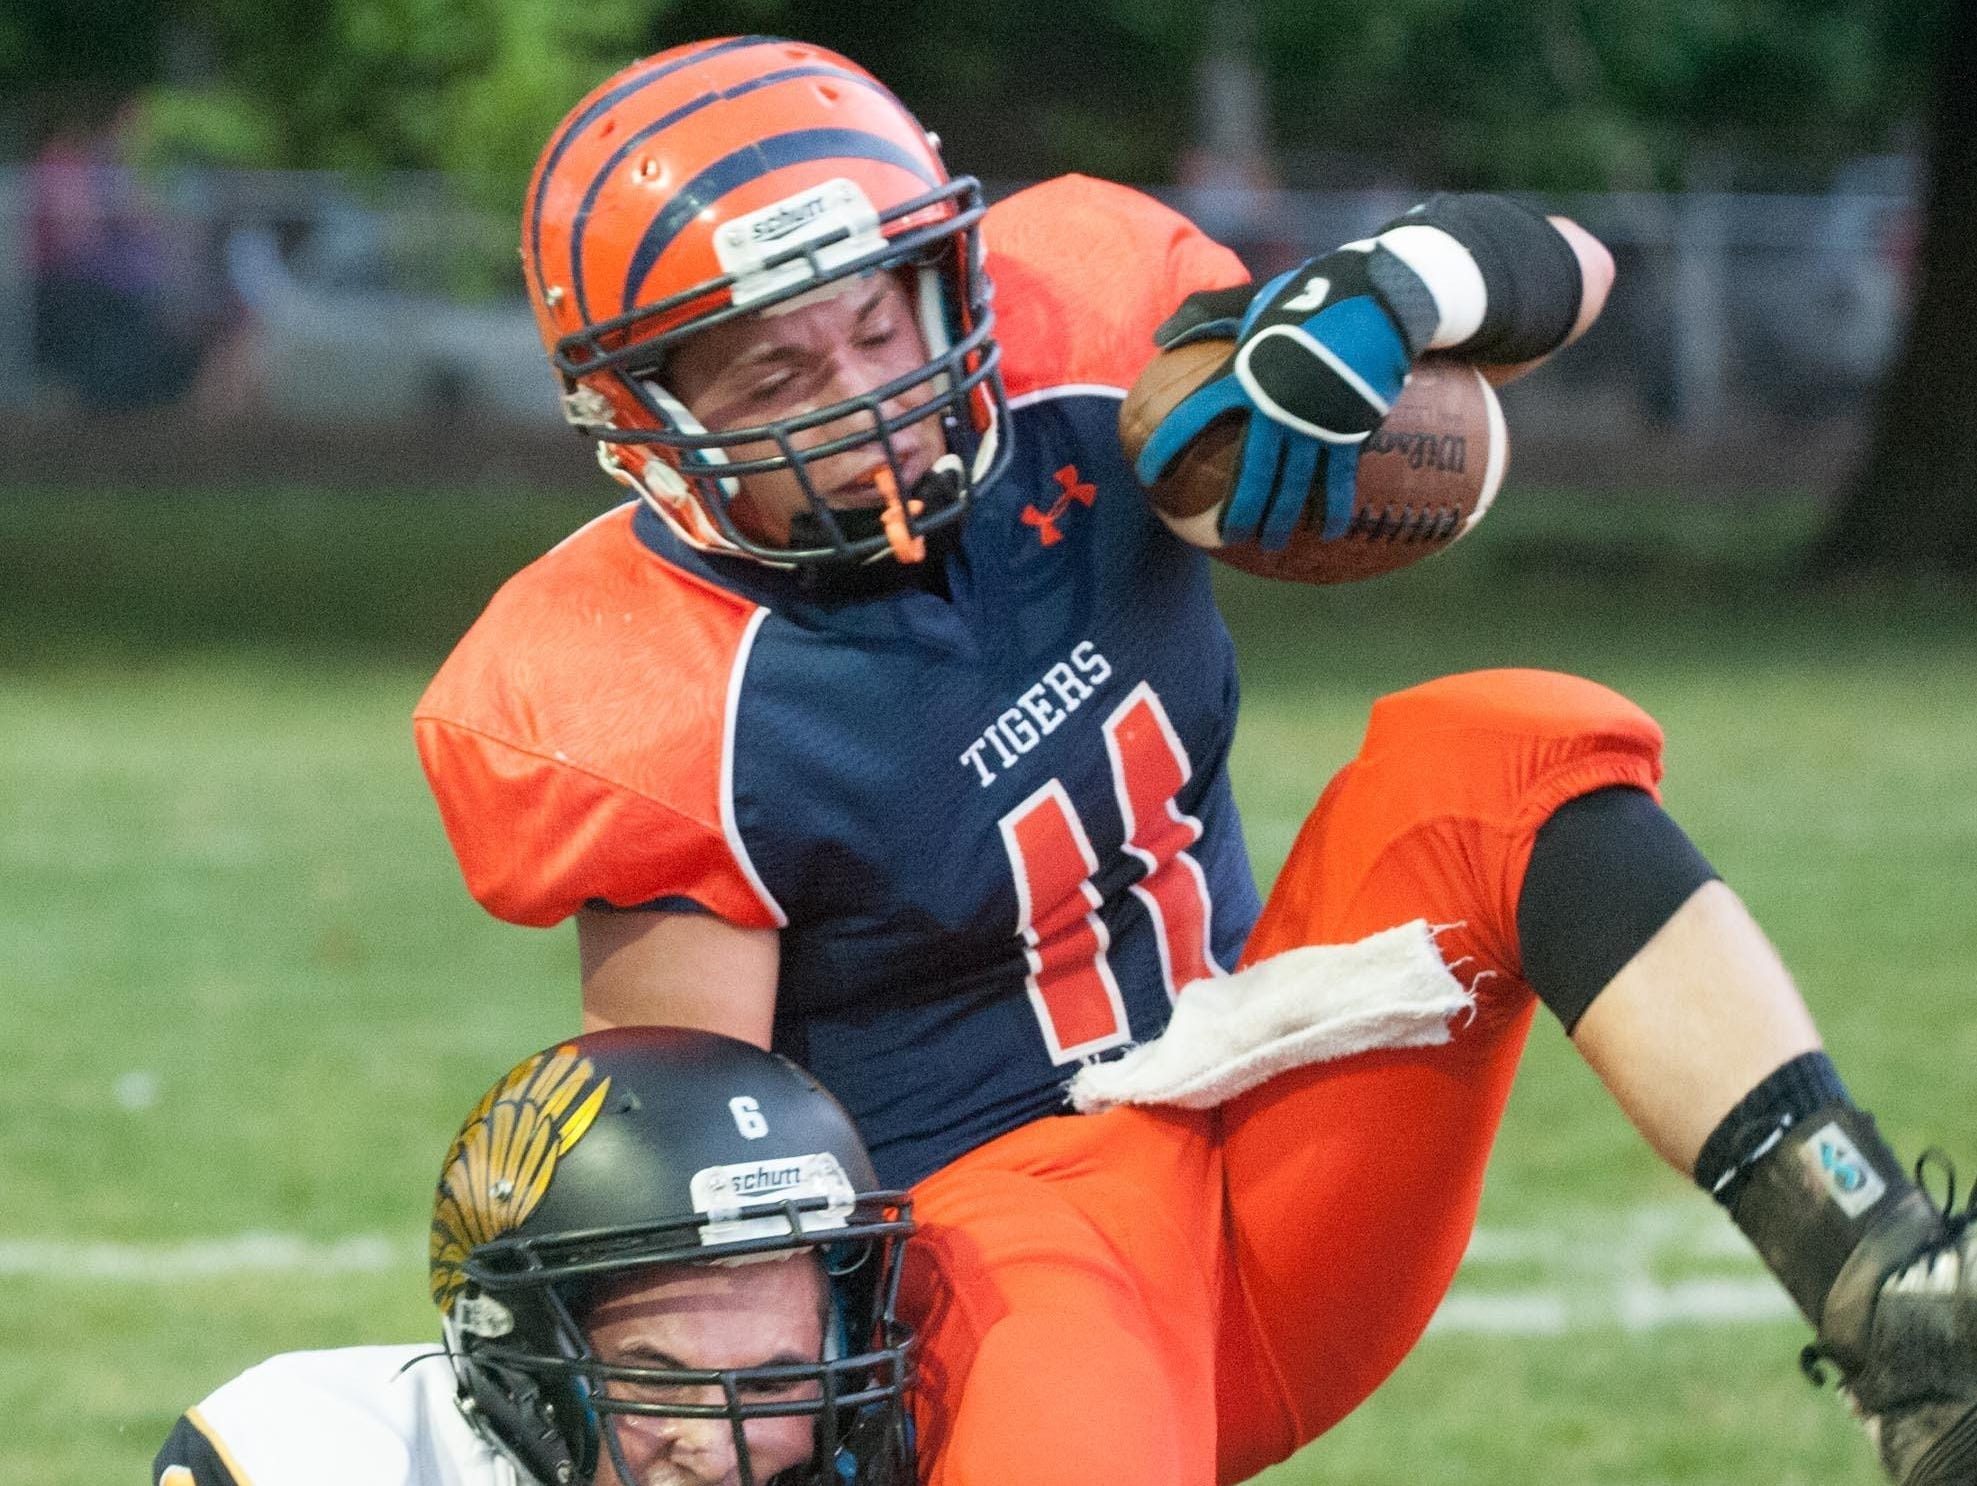 Galion's Athletic Program has been placed on probation by the OHSAA.